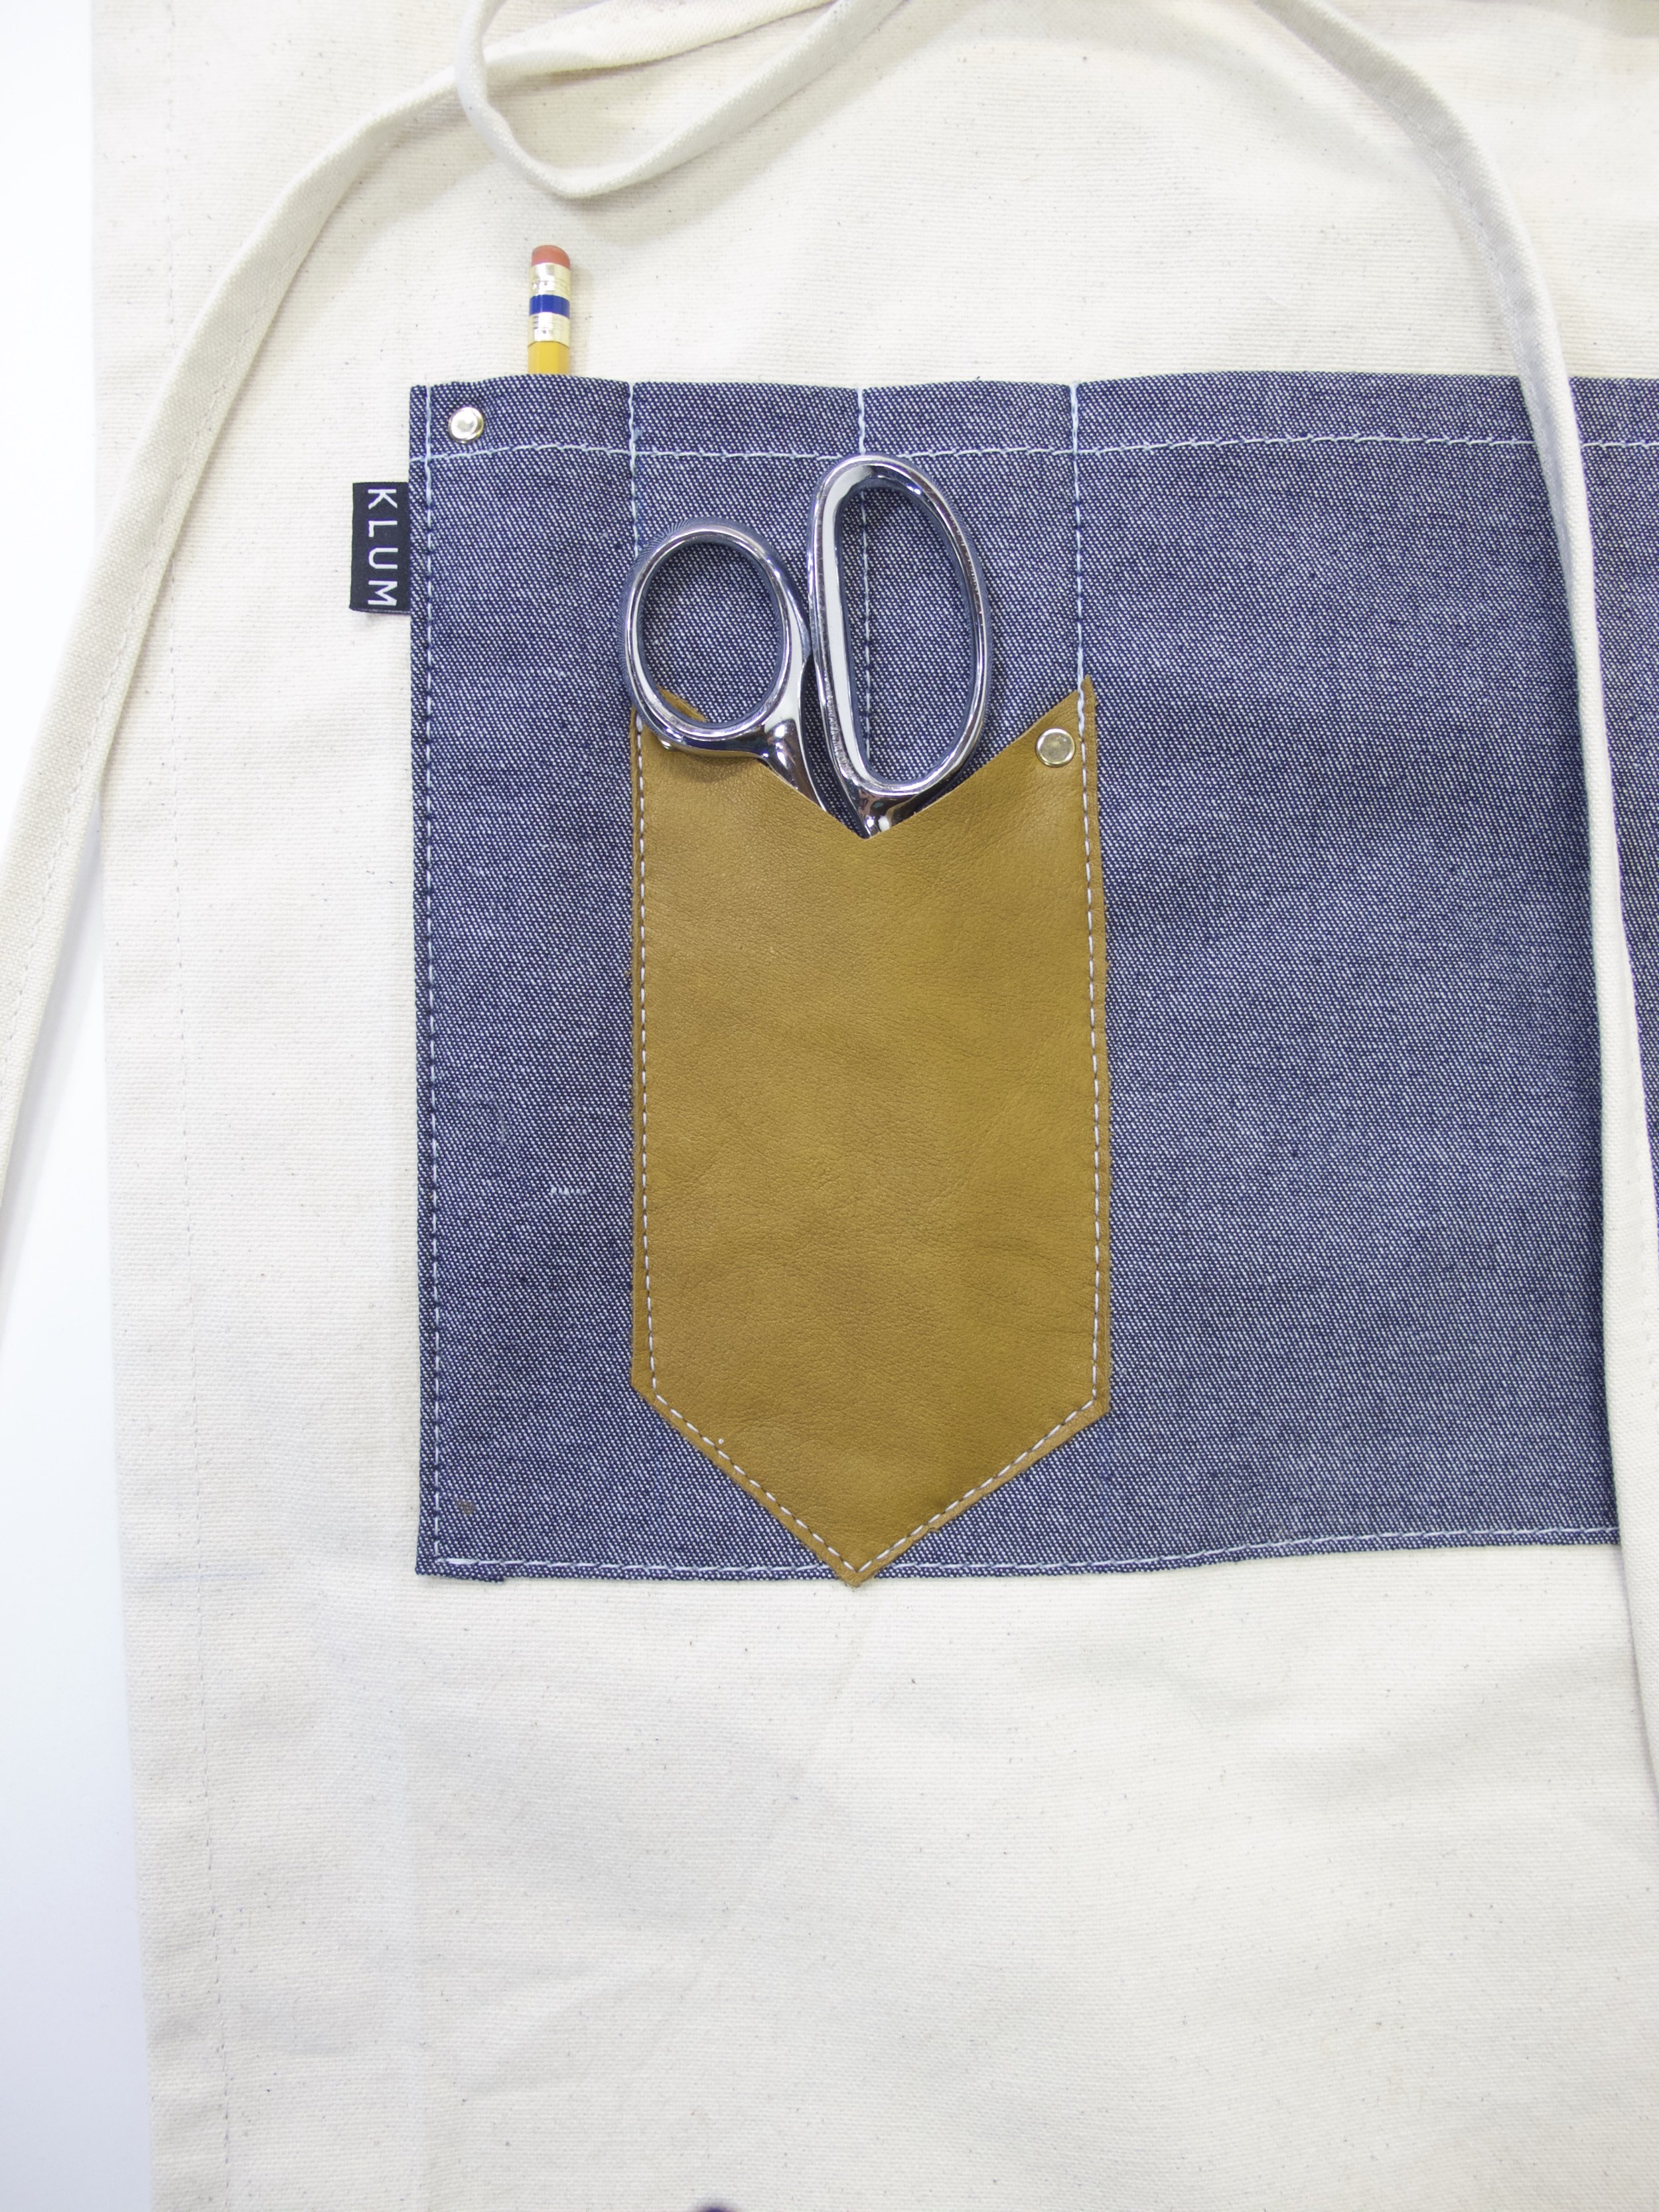 CANVAS-MAKERS-APRON-2.jpg